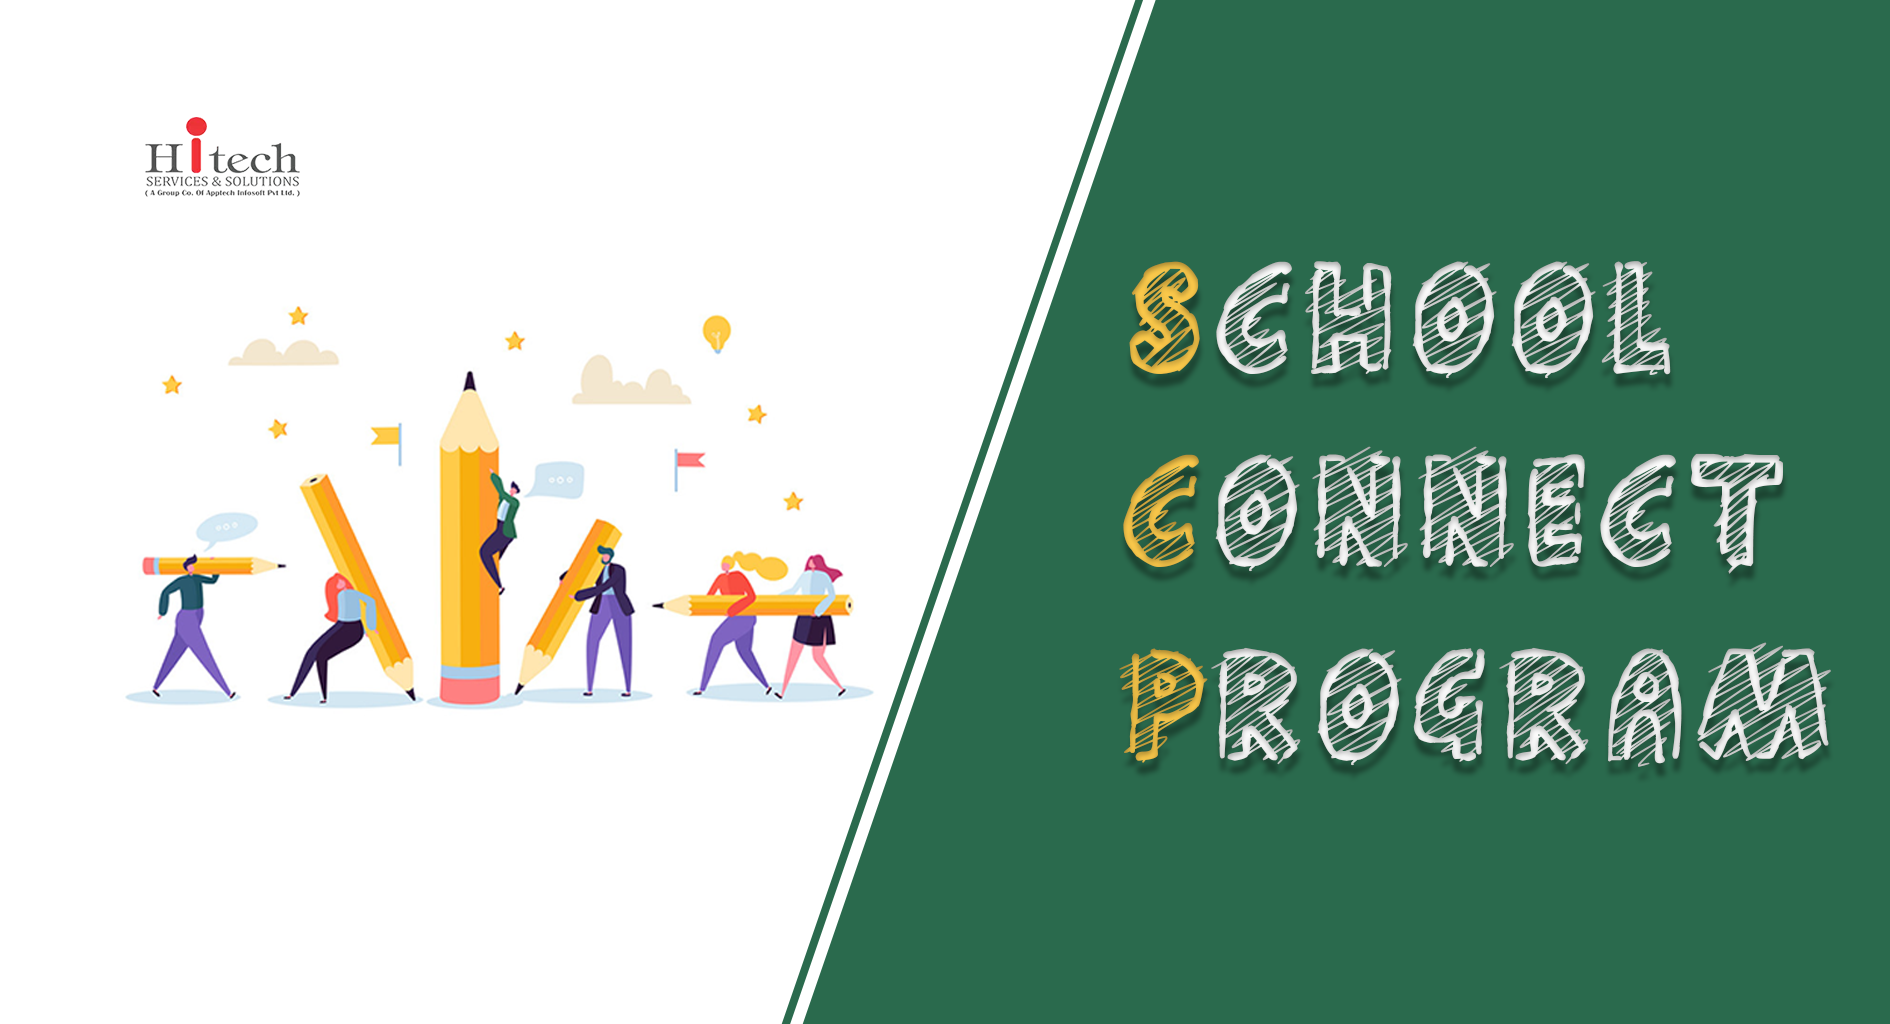 School Connect Program